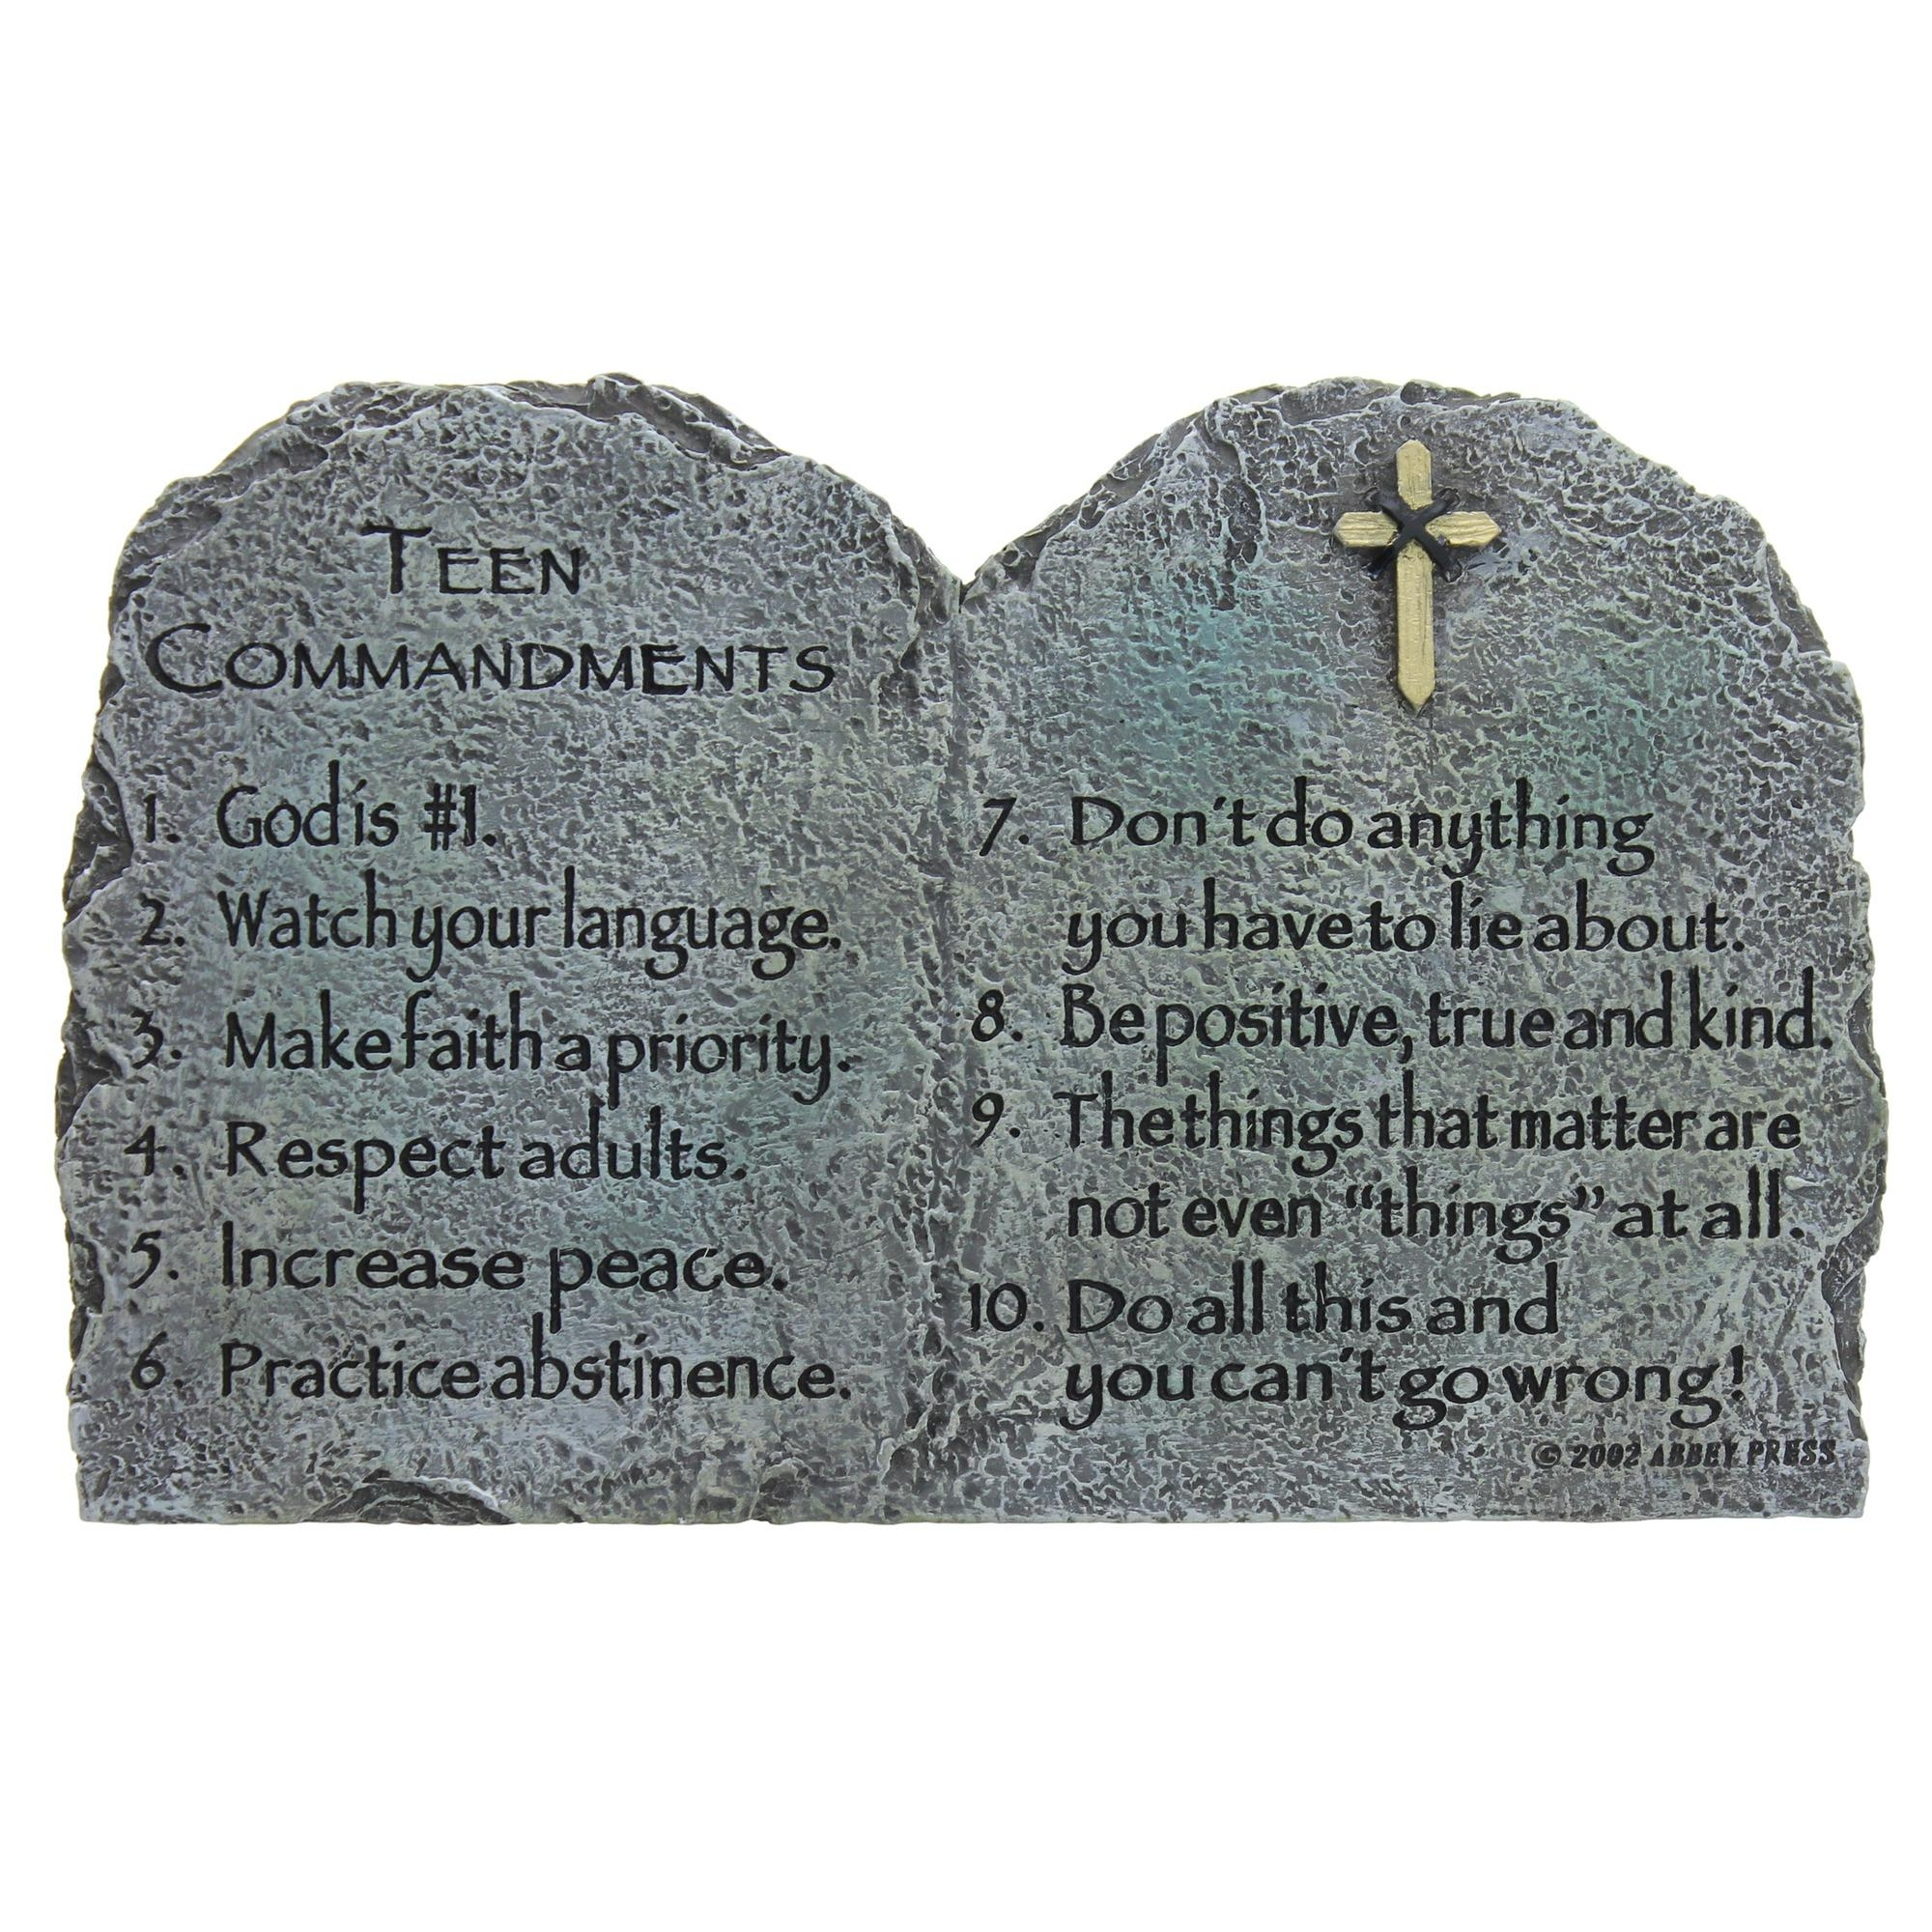 Teen Commandments | The Catholic Company Throughout 10 Commandments Wall Art (Image 13 of 20)